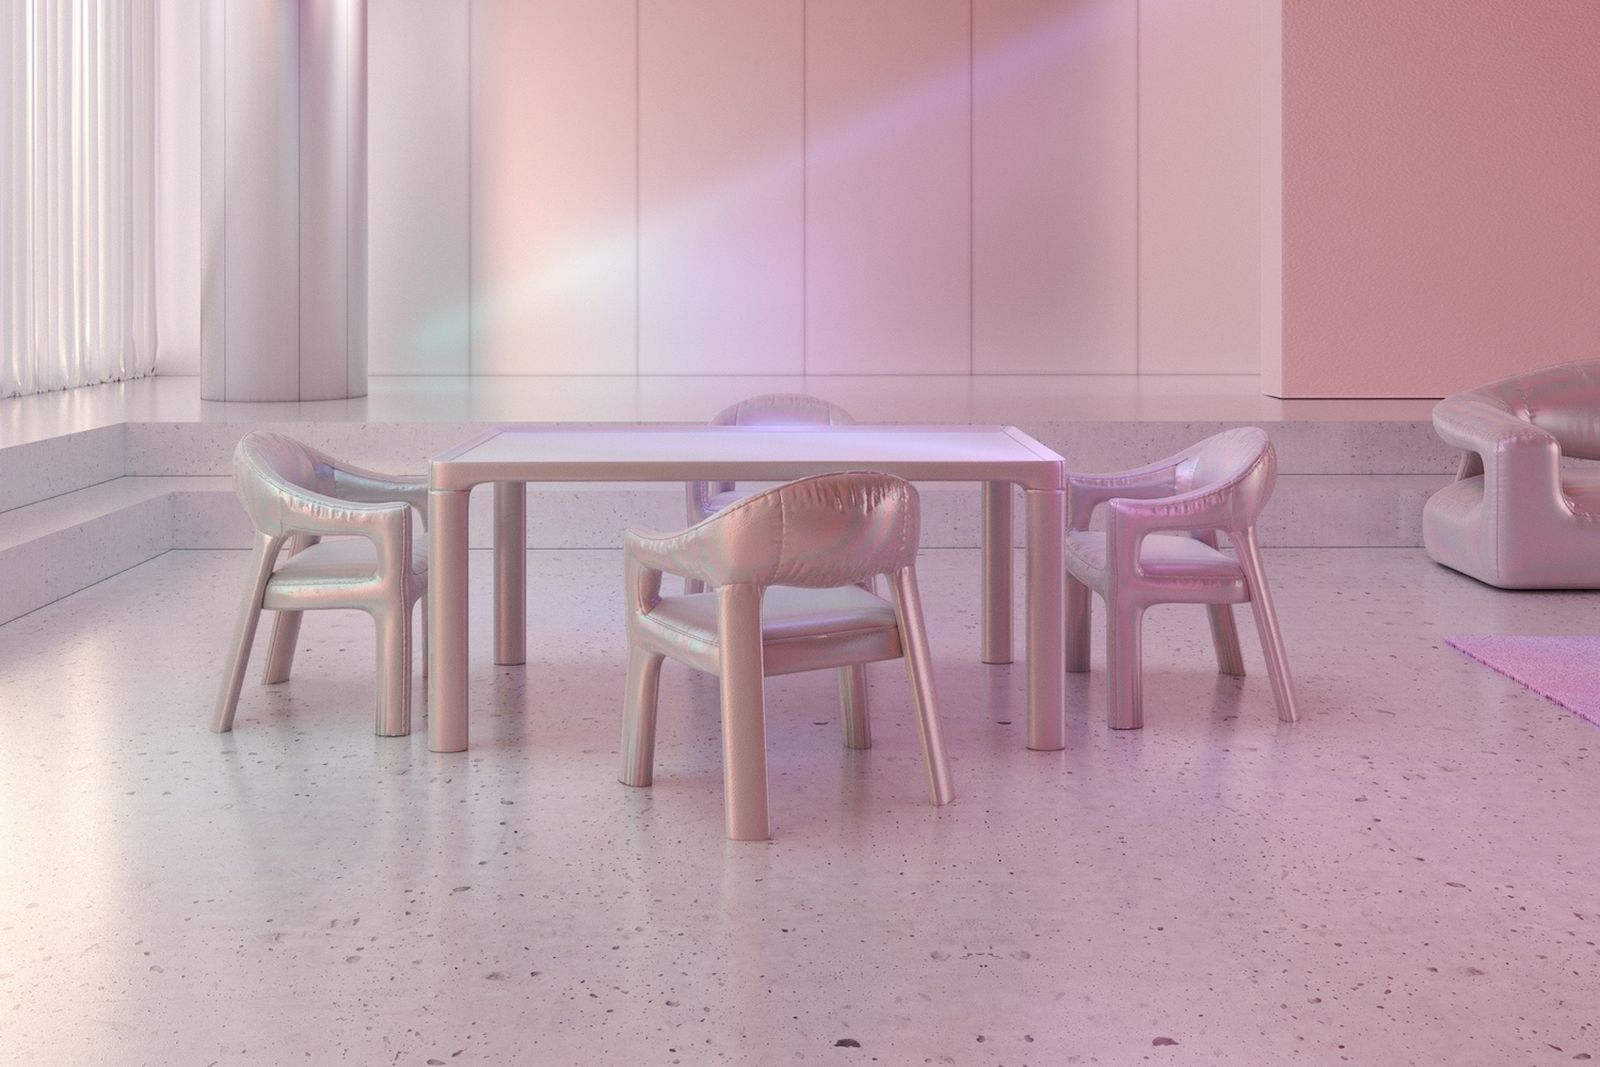 holo scandinavian furniture collection Artur de Menezes Six N. Five